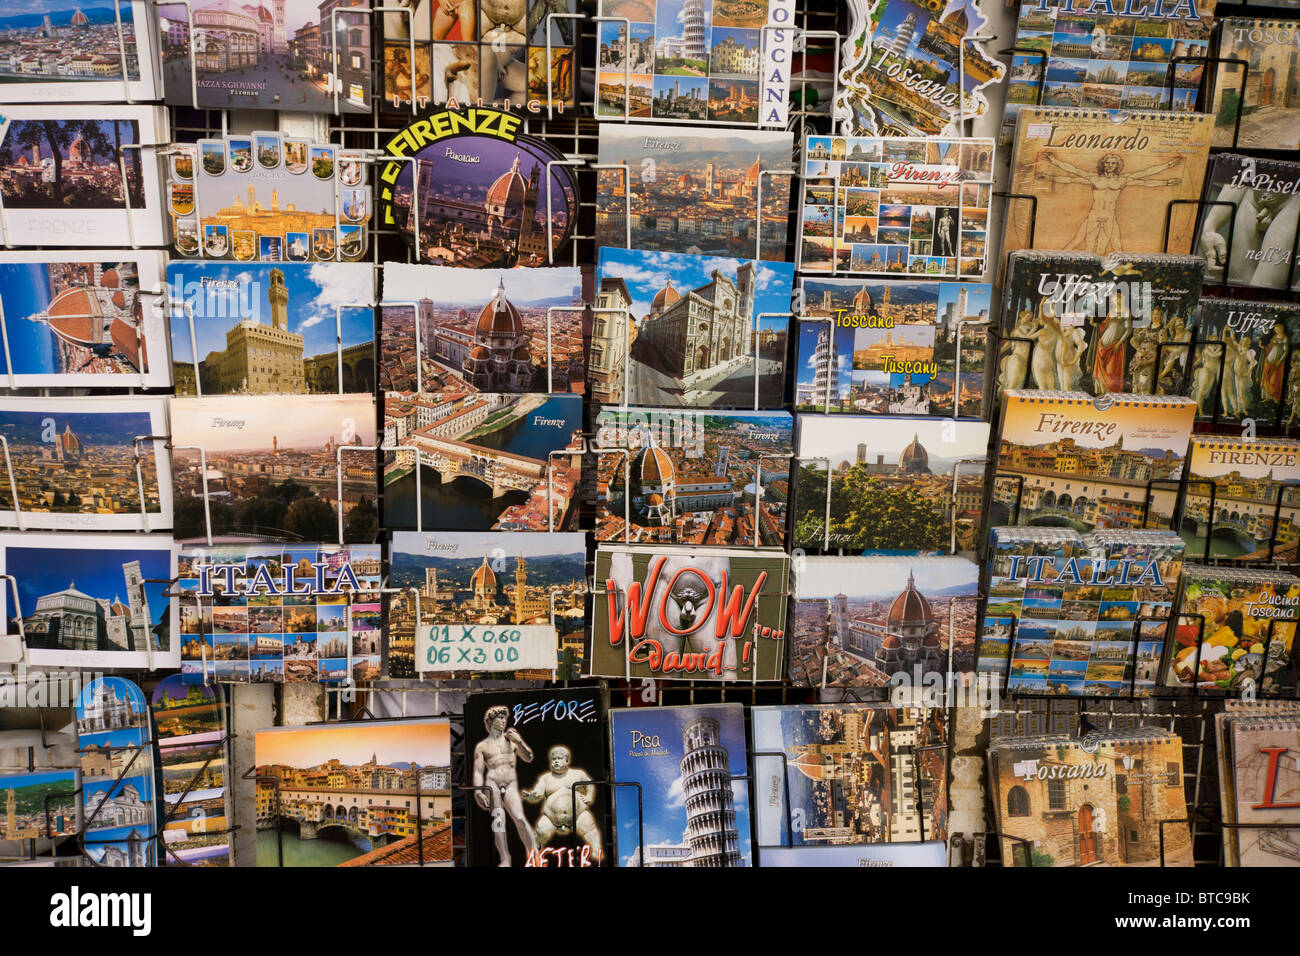 Florence postcards on rack in Piazza Santa Giovanni beneath Florence's Santa Maria del Fiore (Duomo) Cathedral. - Stock Image